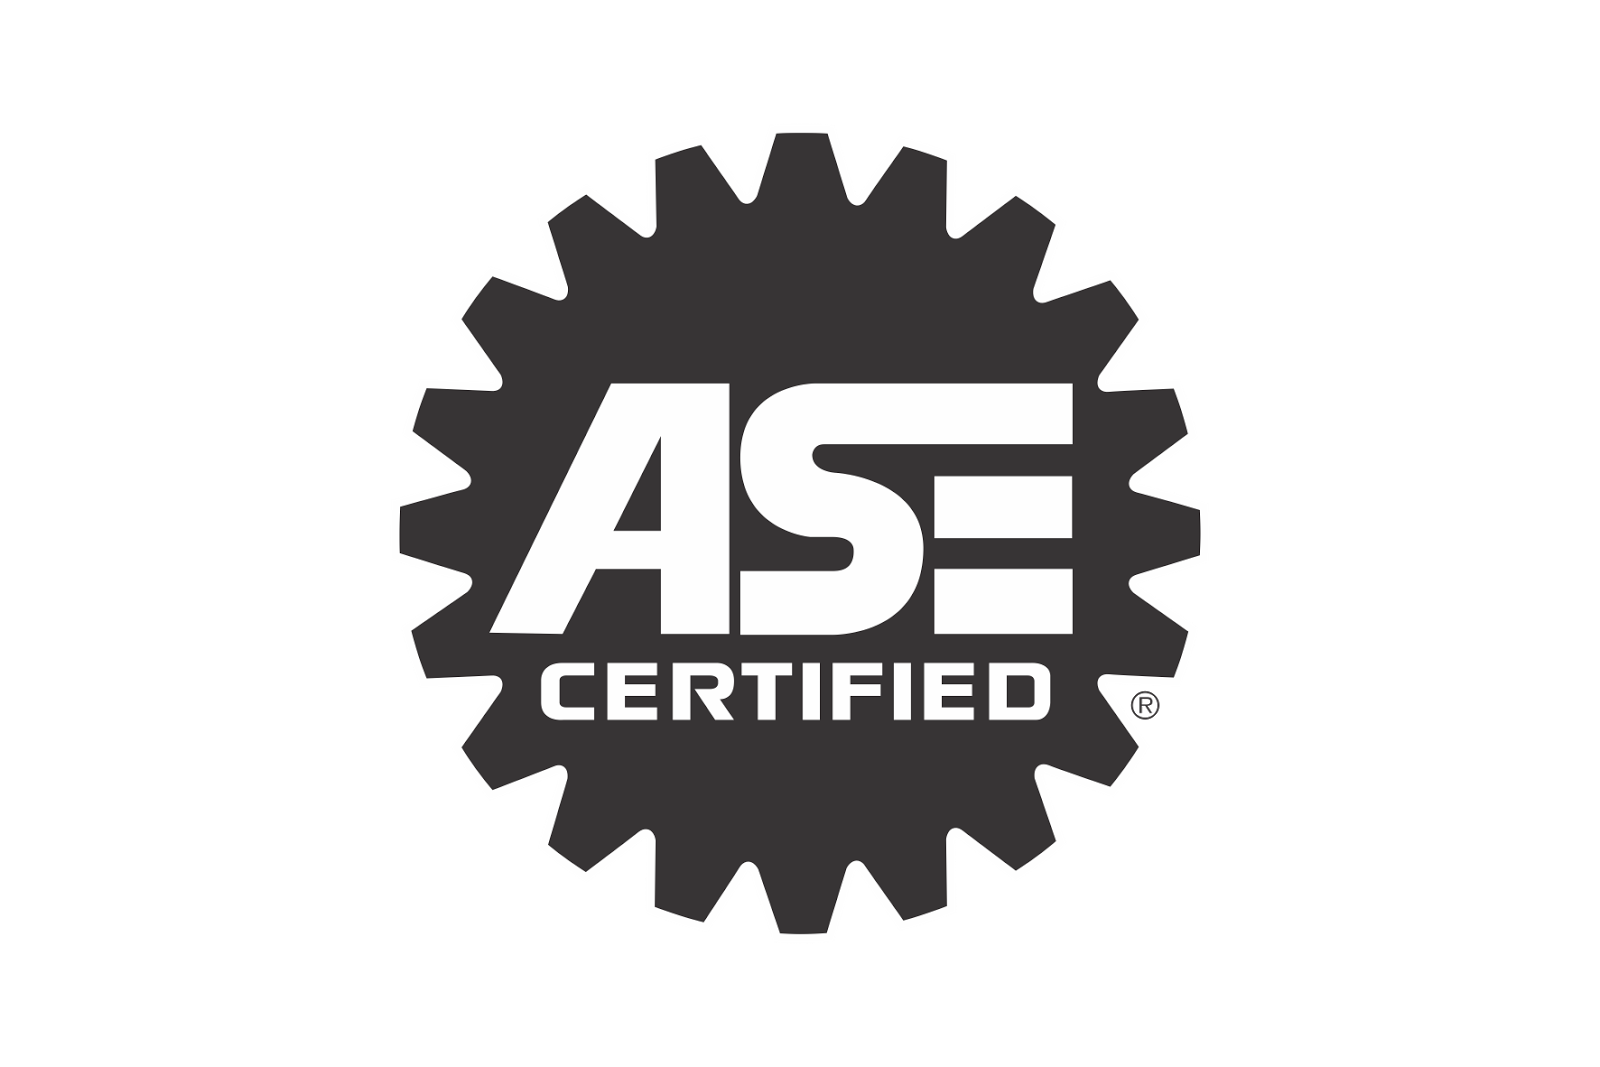 ASE Certified Seal